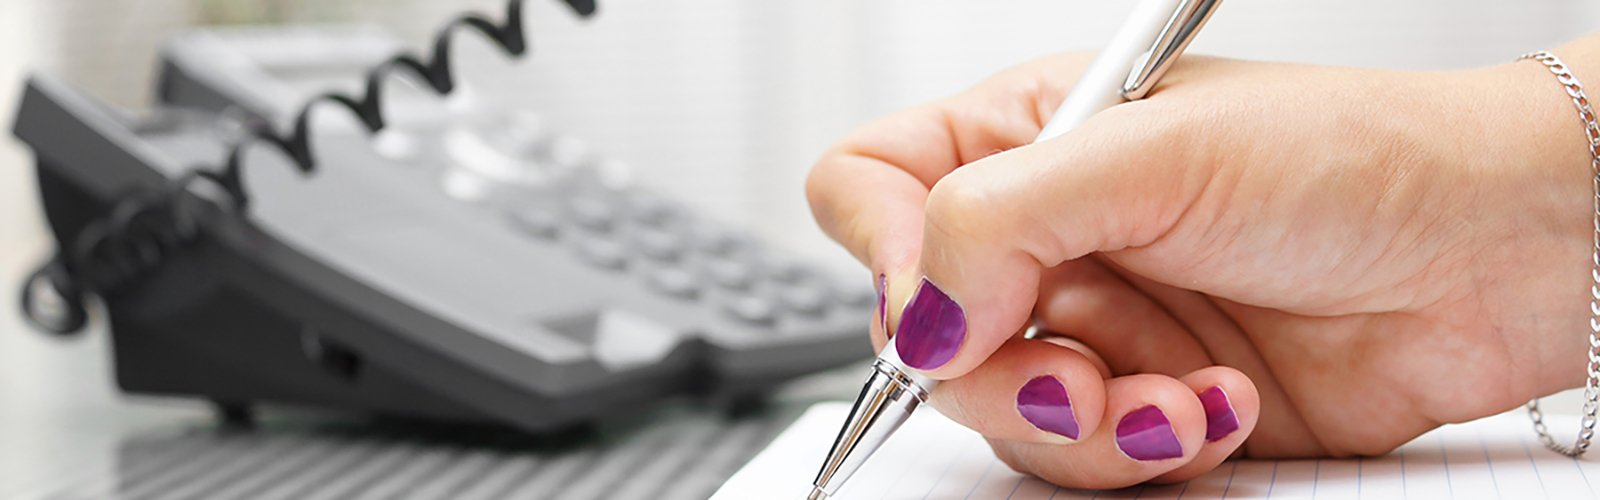 Secretarial Services for Small Business Owners